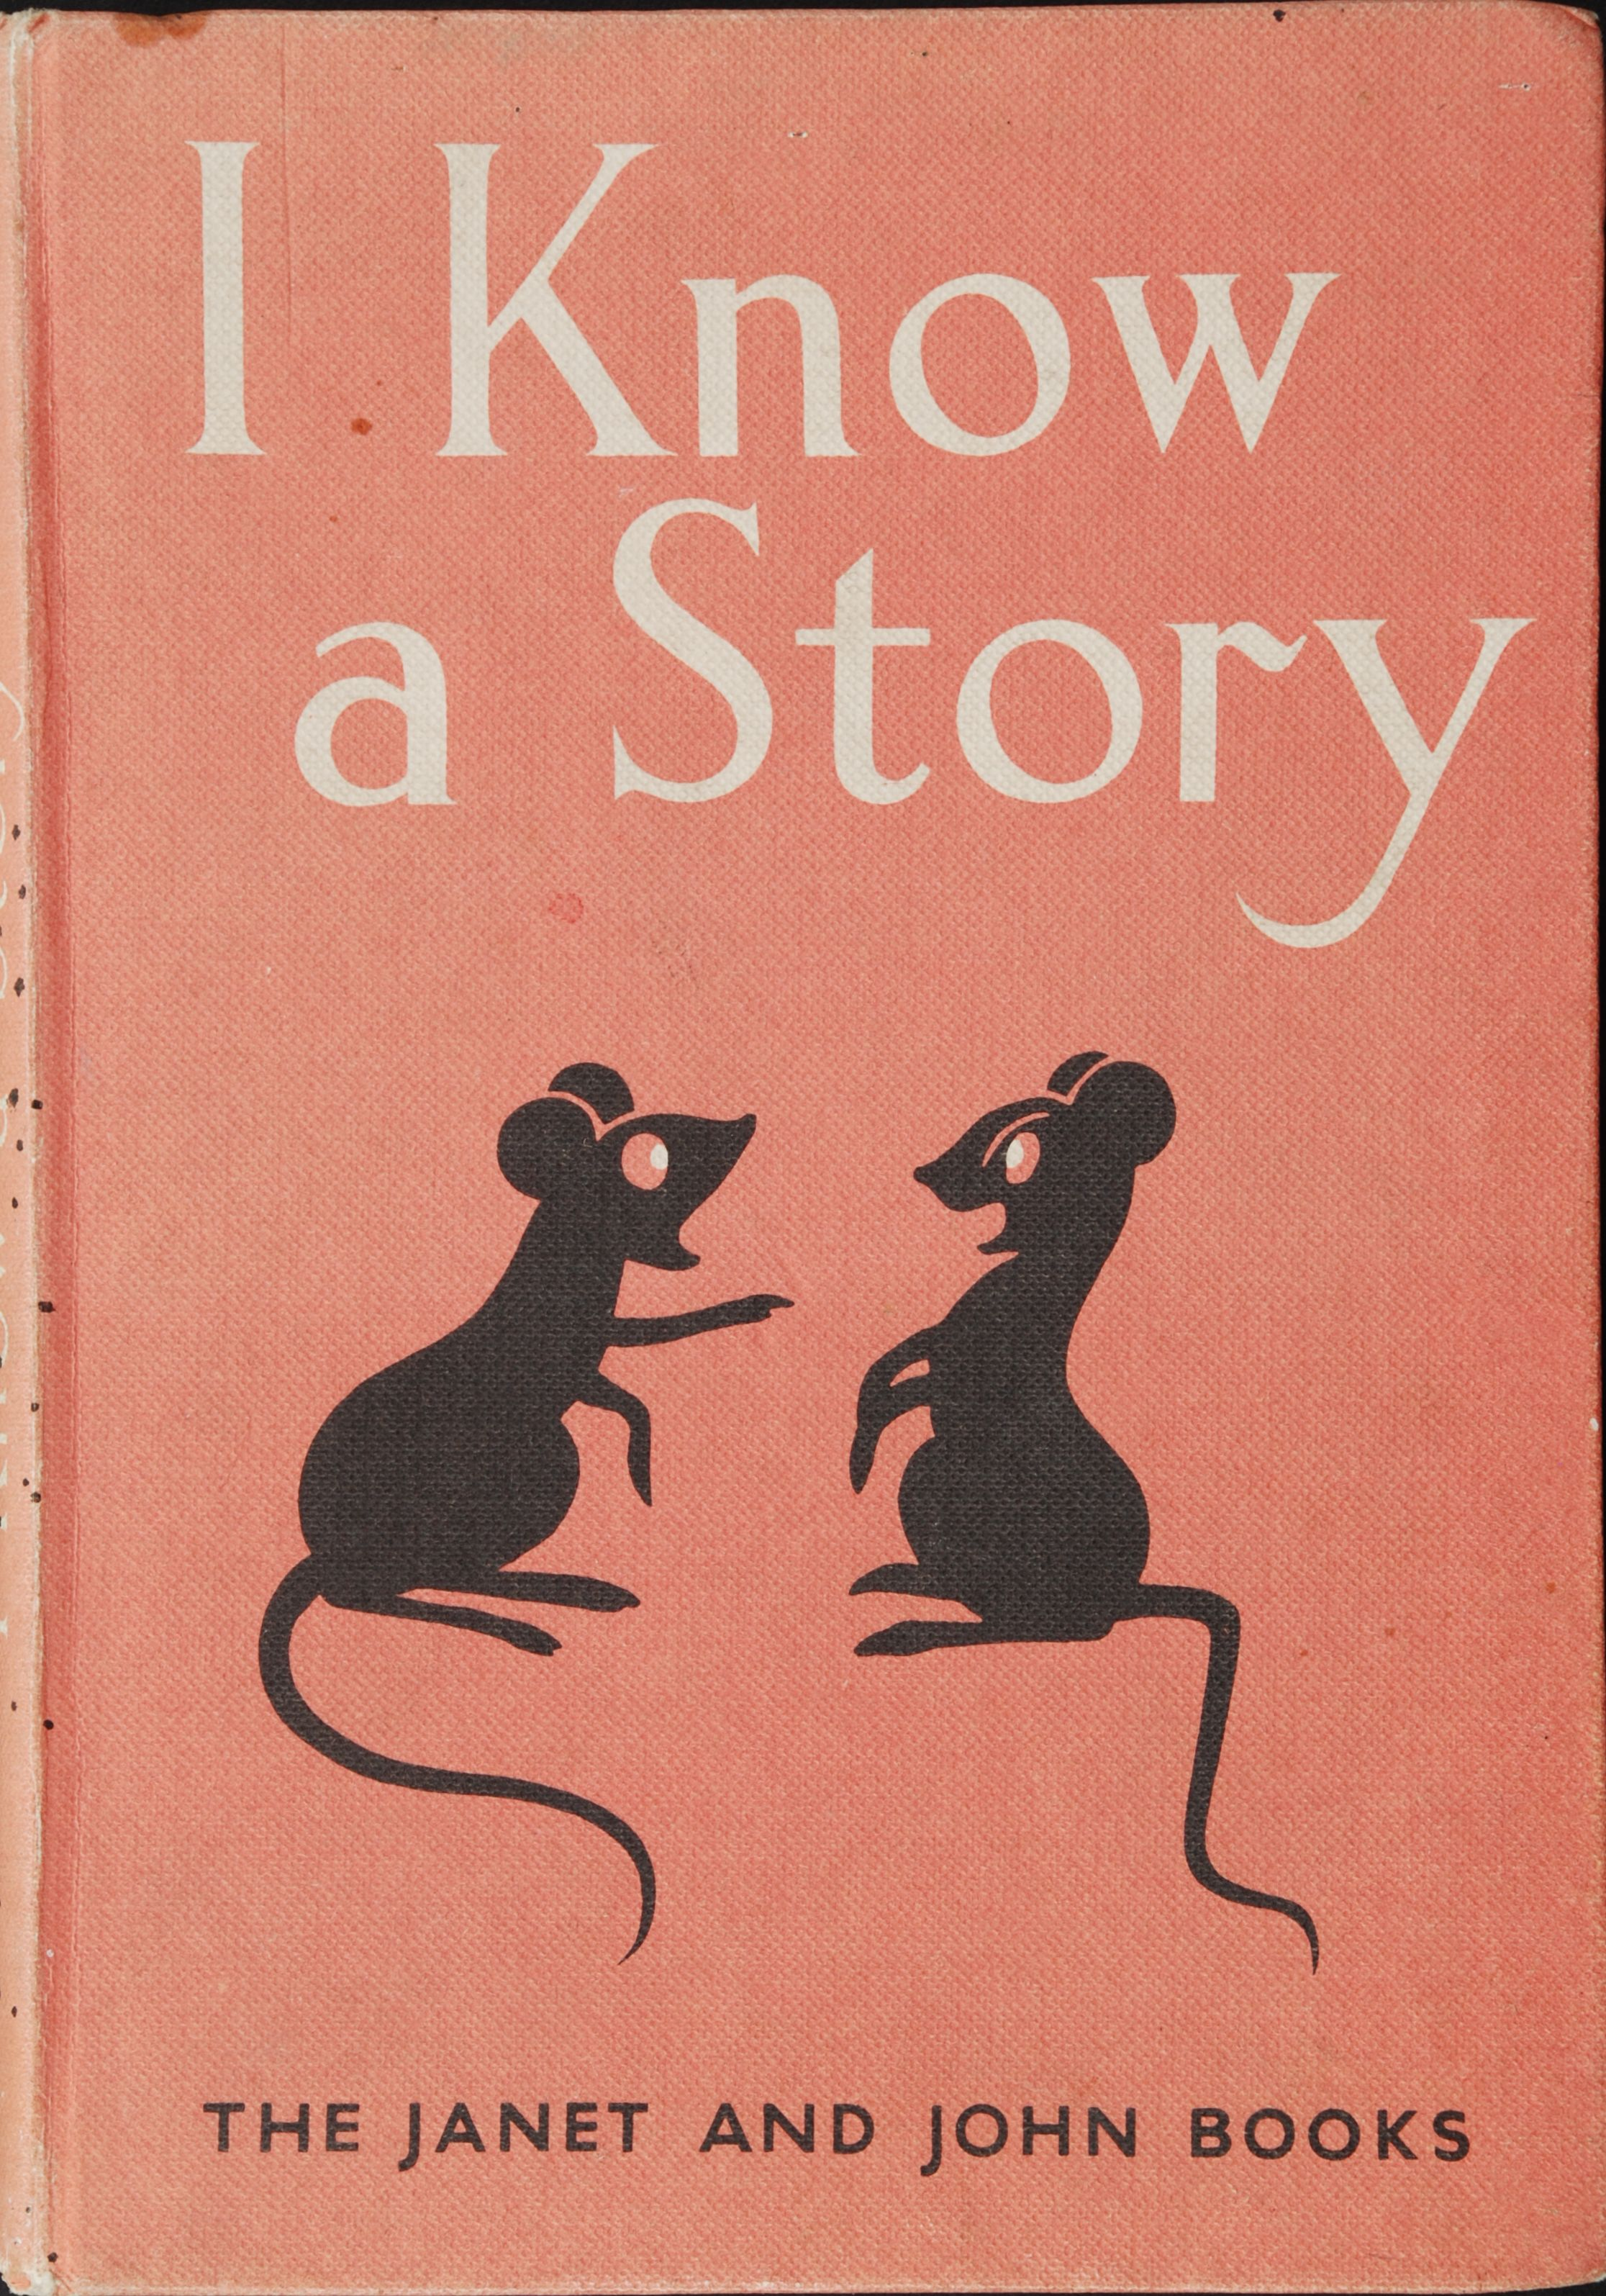 Mabel O'Donnell and Rona Munro. I know a story. Herts. [England]: James Nisbet and Co., 1949.